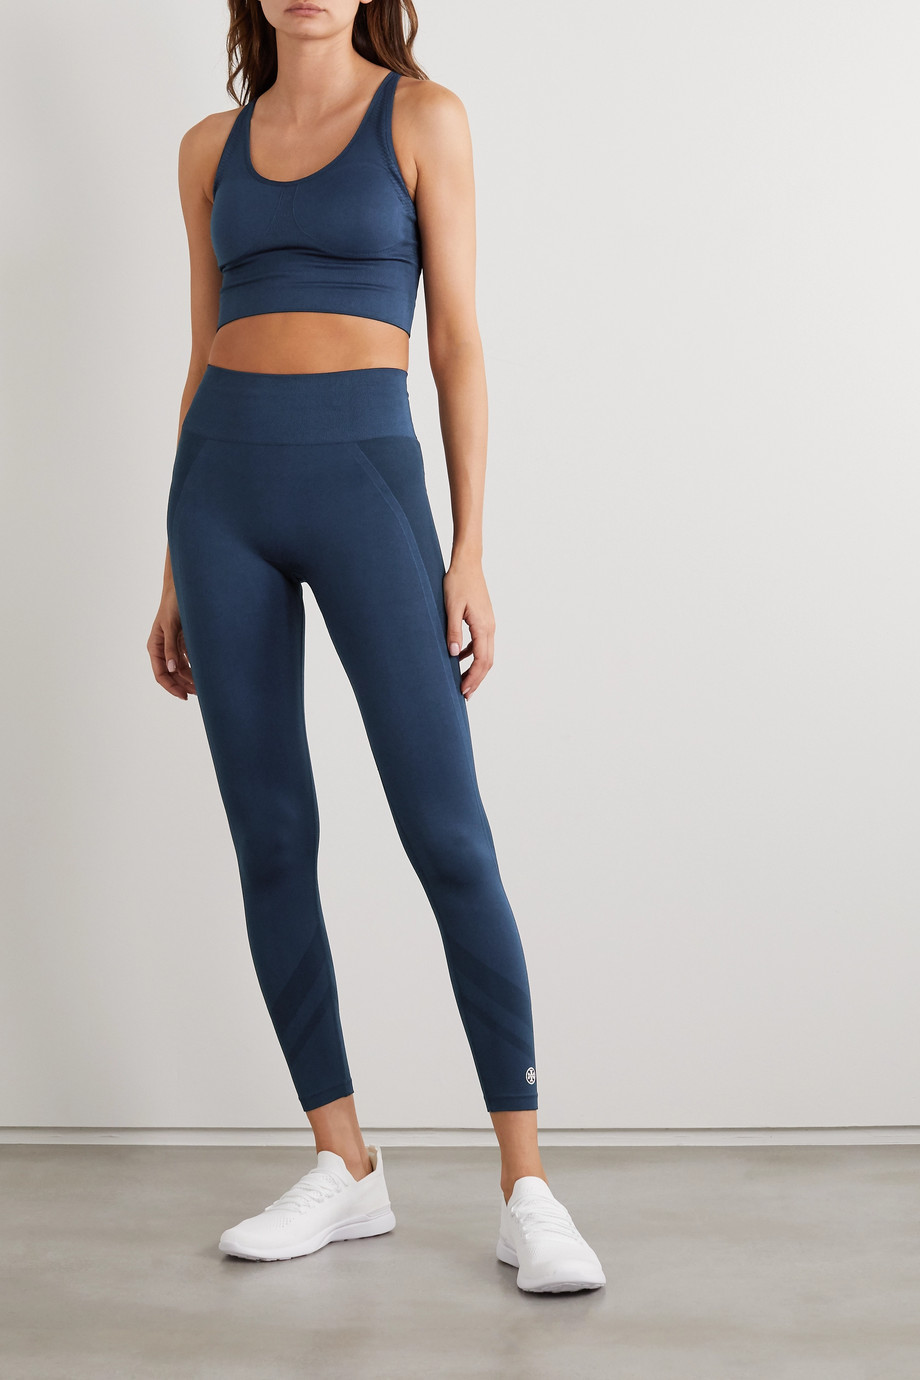 Tory Sport Seamless stretch sports bra